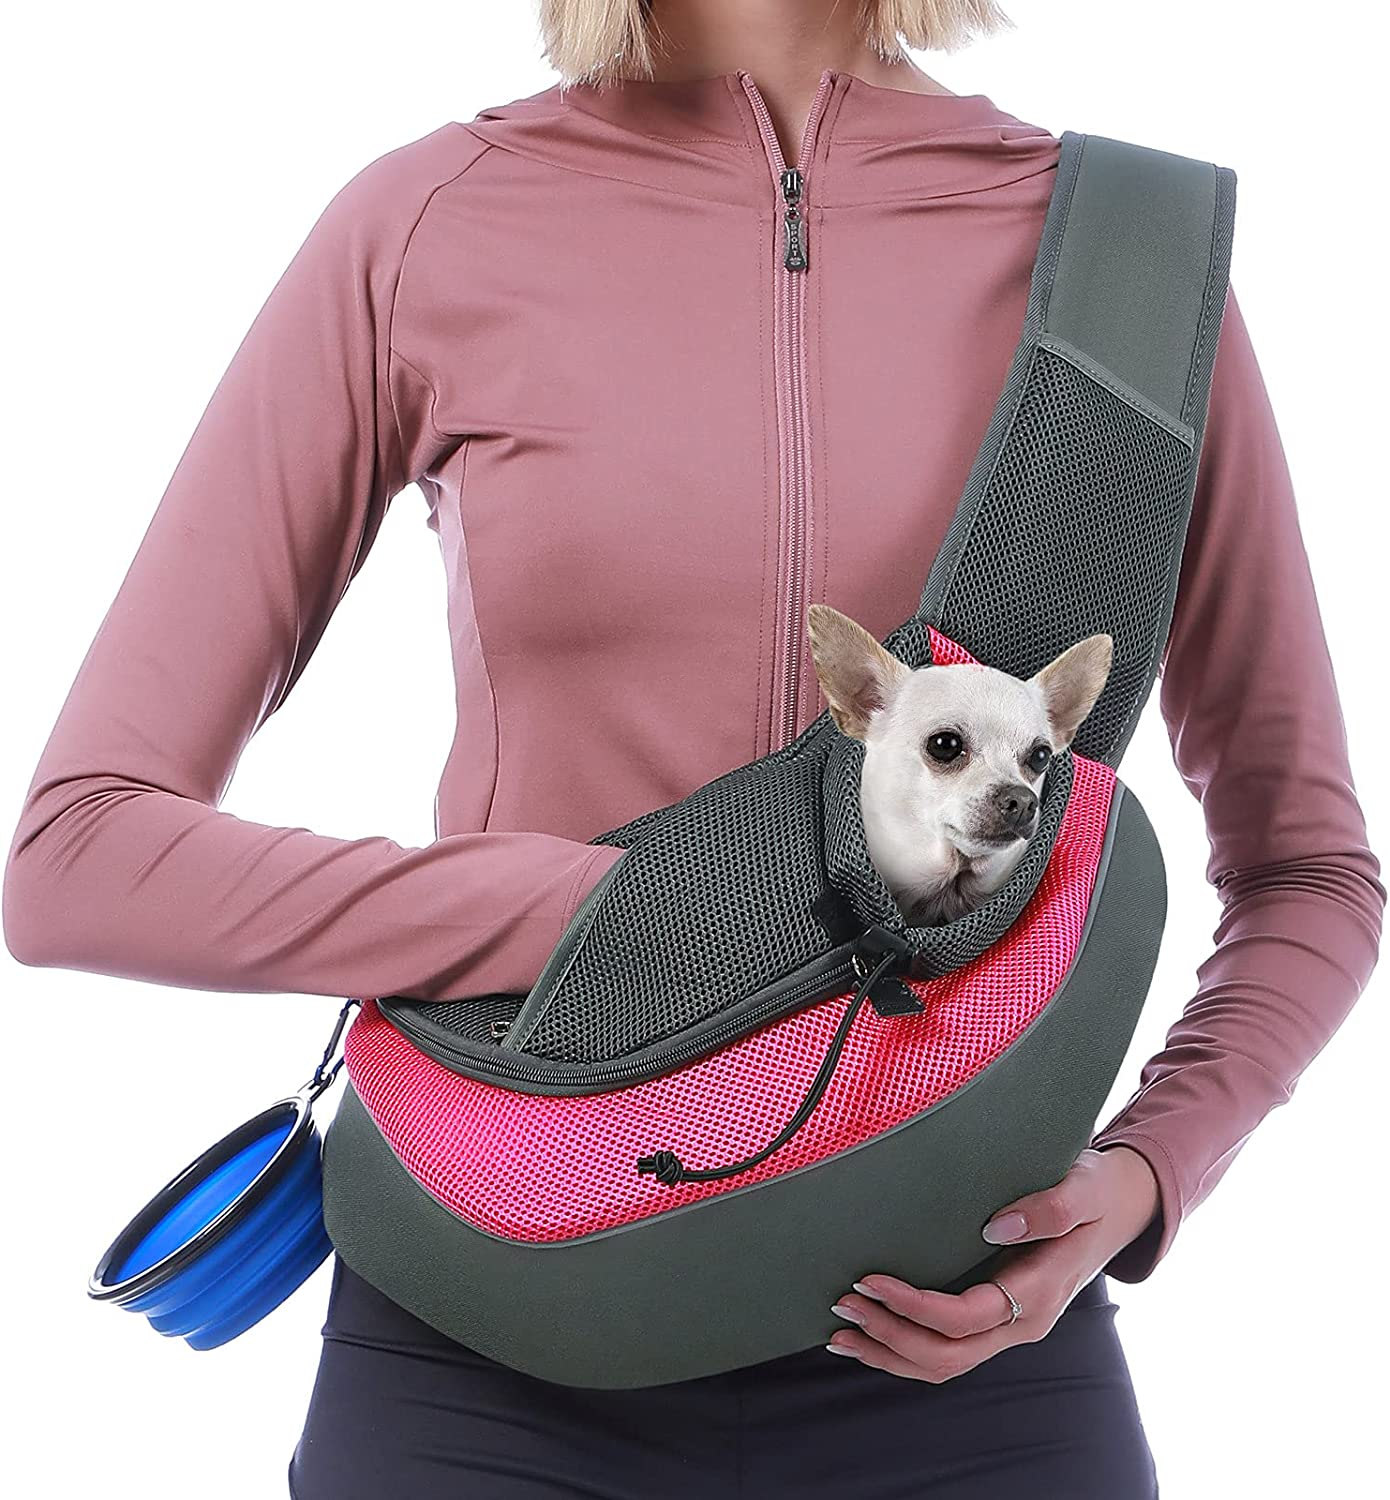 Lowest price challenge Sucipi Pet Dog Sling Carrier Breathable Bottom Mesh Beauty products Tra Hard and